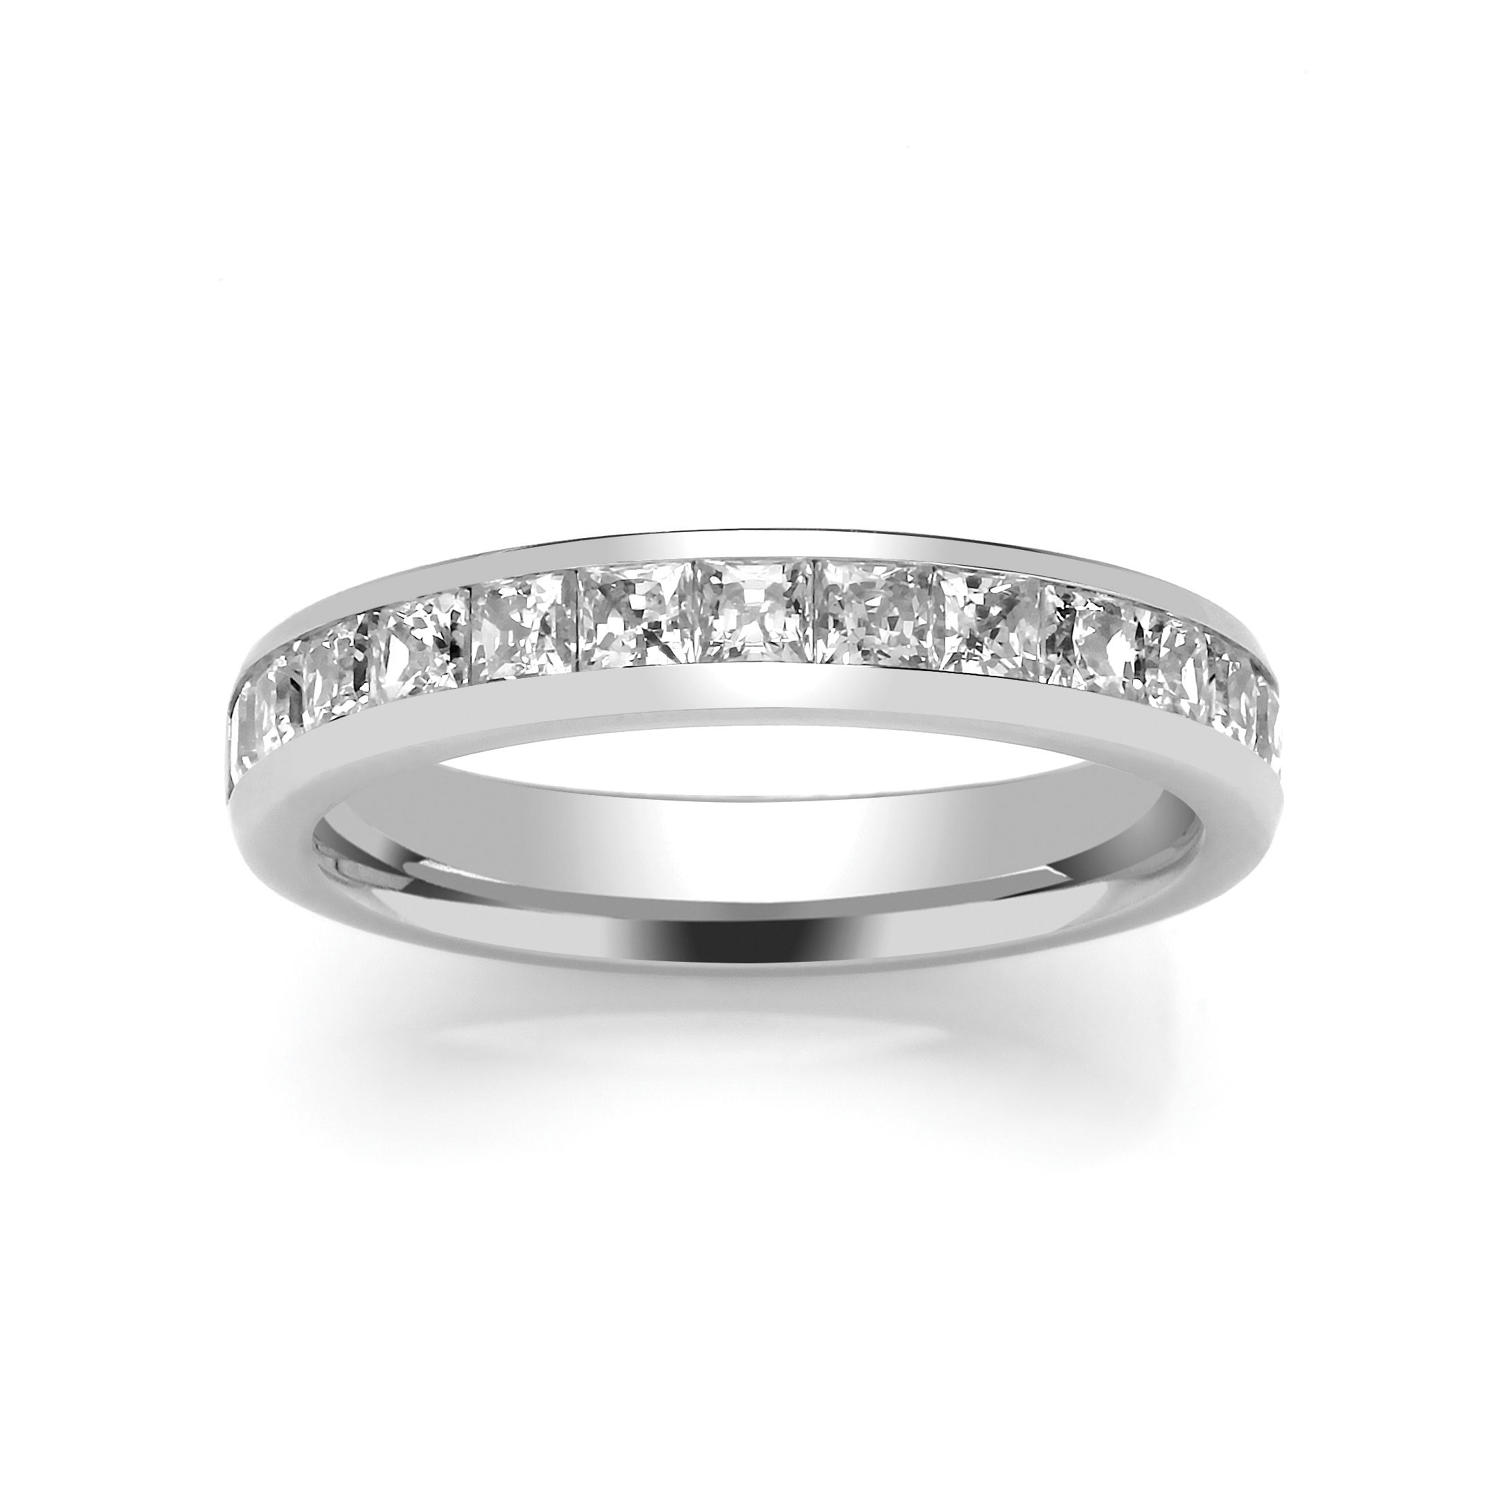 3.7mm Princess Cut Channel Set Ring